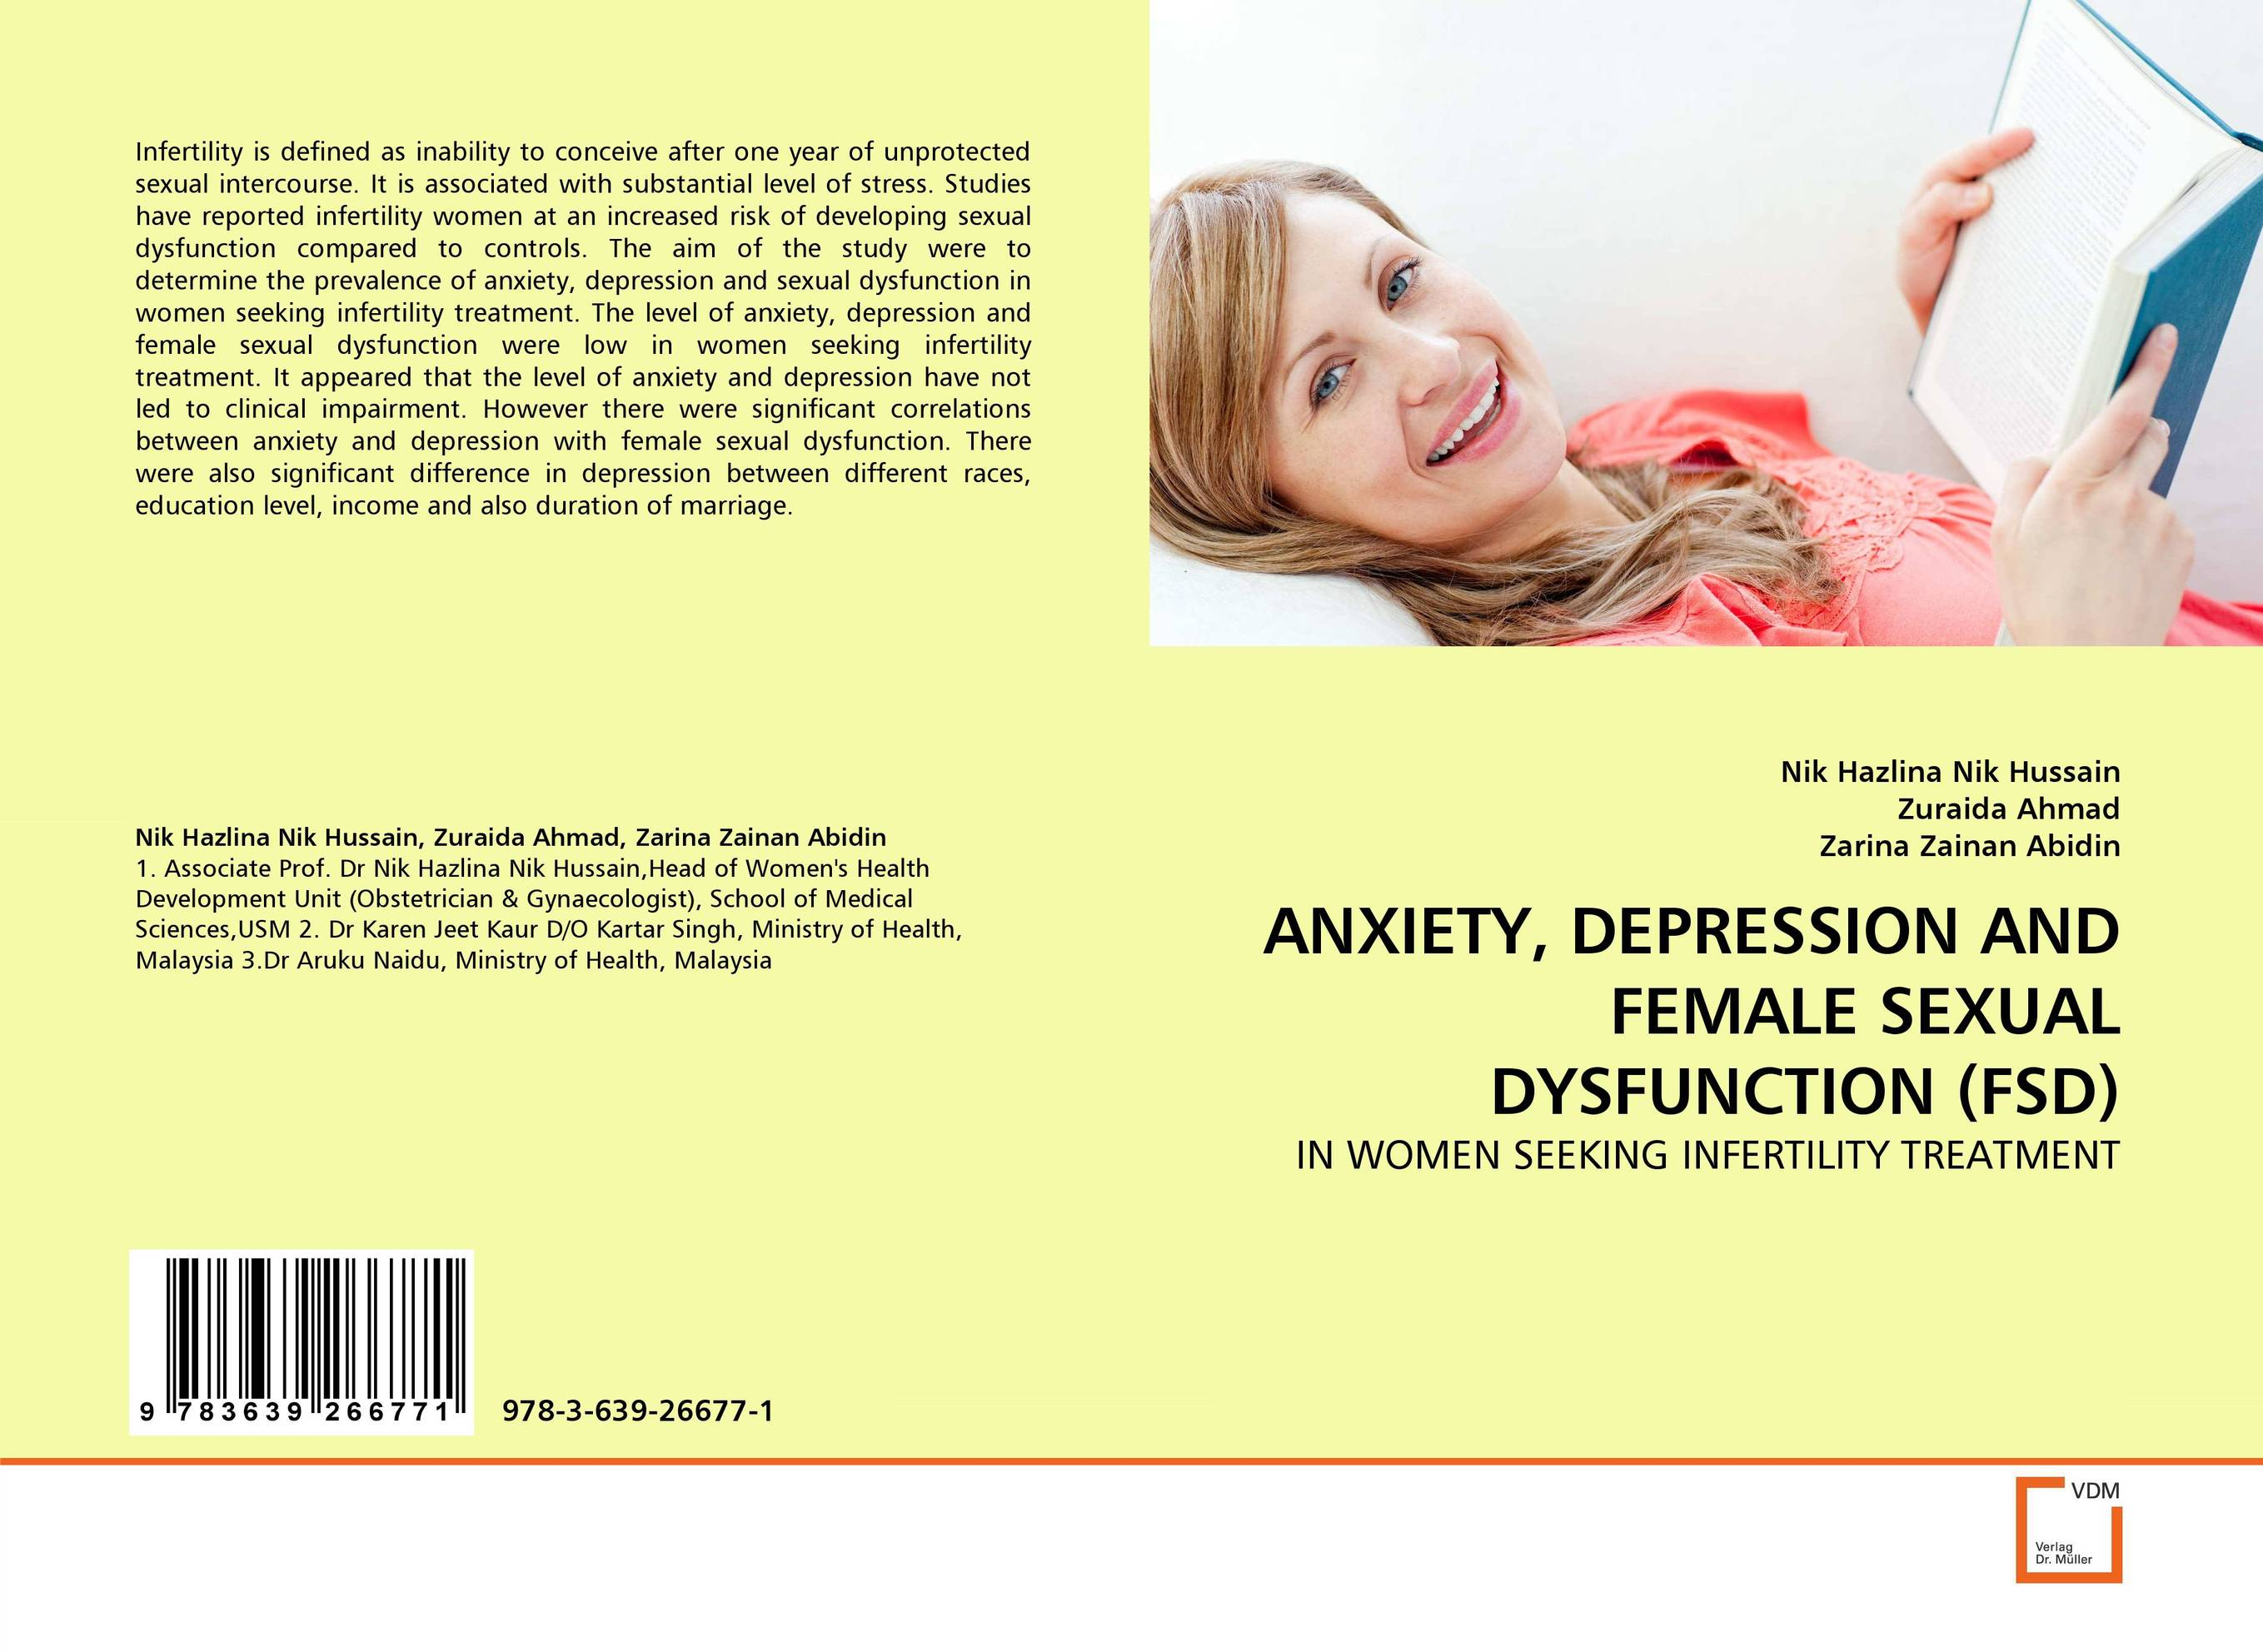 ANXIETY, DEPRESSION AND FEMALE SEXUAL DYSFUNCTION (FSD) therapeutic management of infertility in cattle